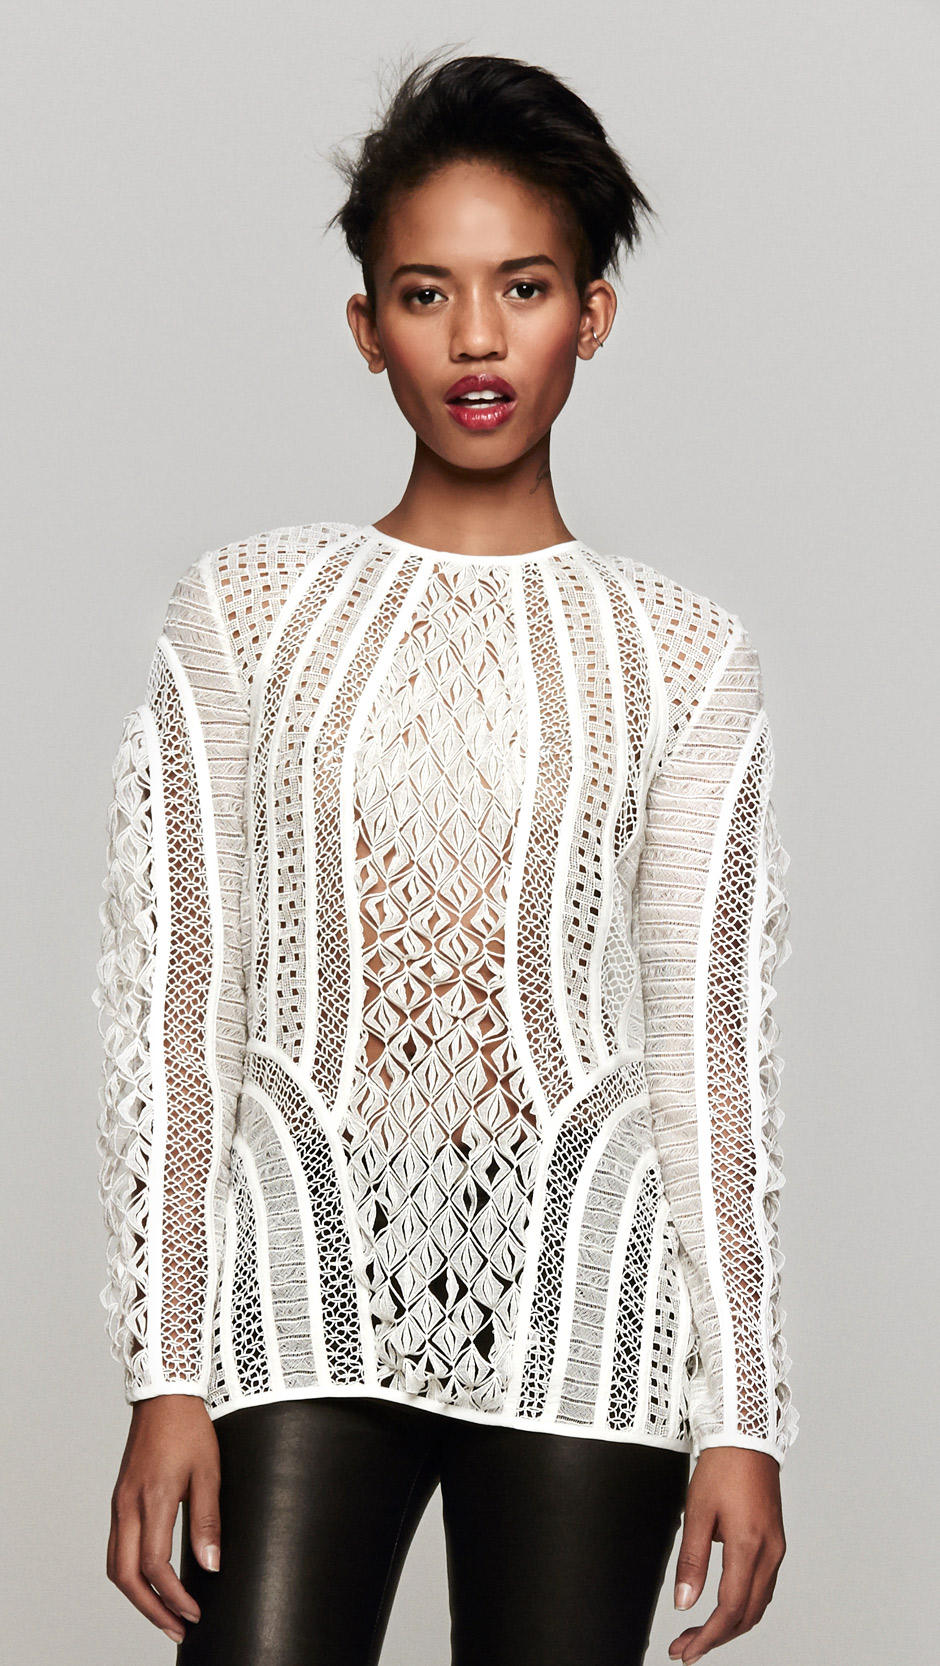 Lyst - Zimmermann Good Love Contour Lace Top in White